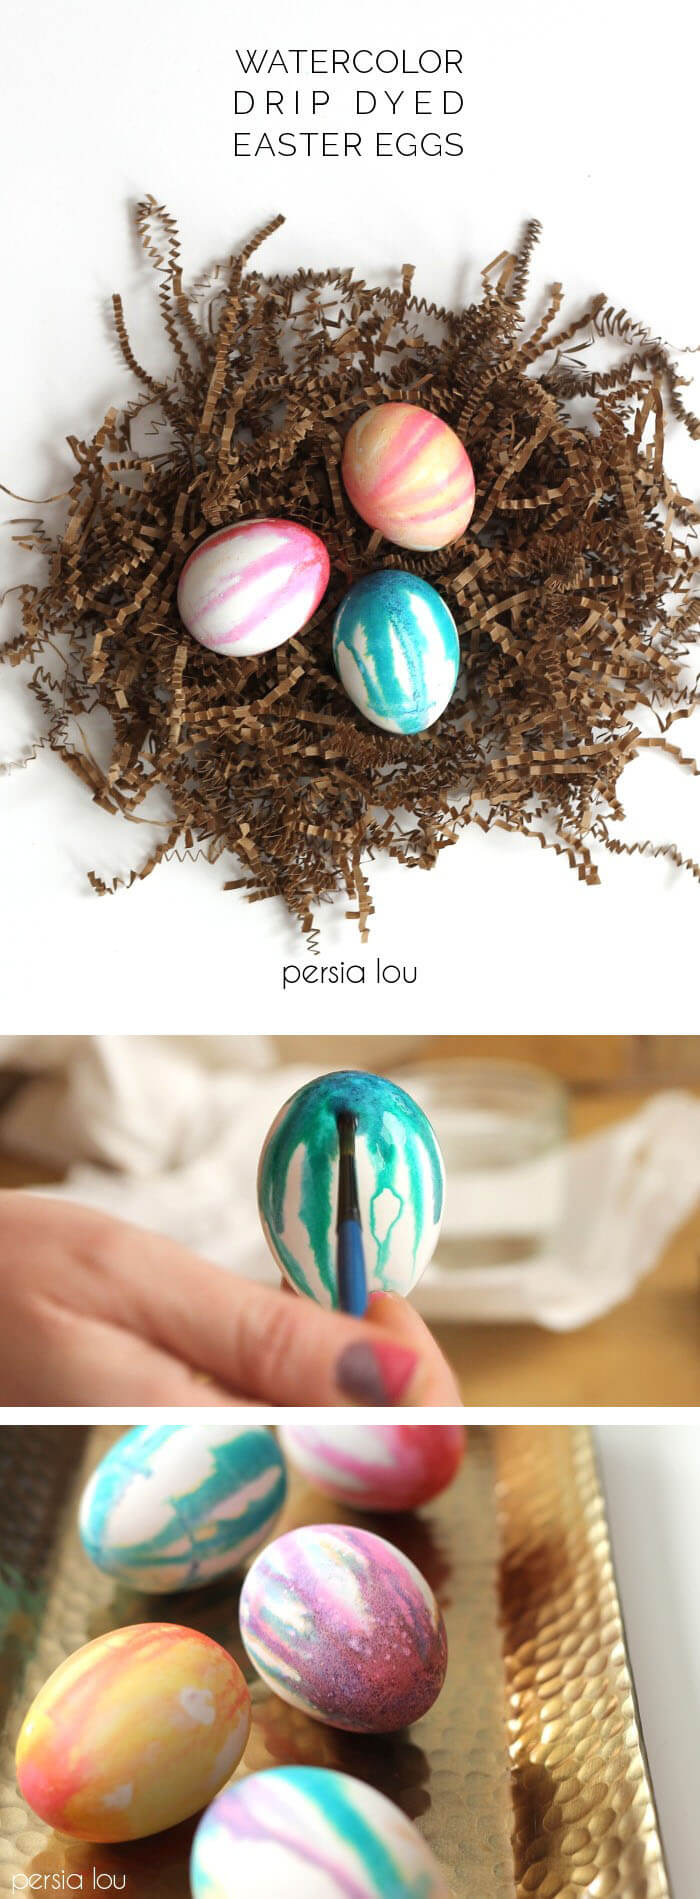 make your own watercolor drip dyed easter eggs with regular egg colors. Fun and pretty!